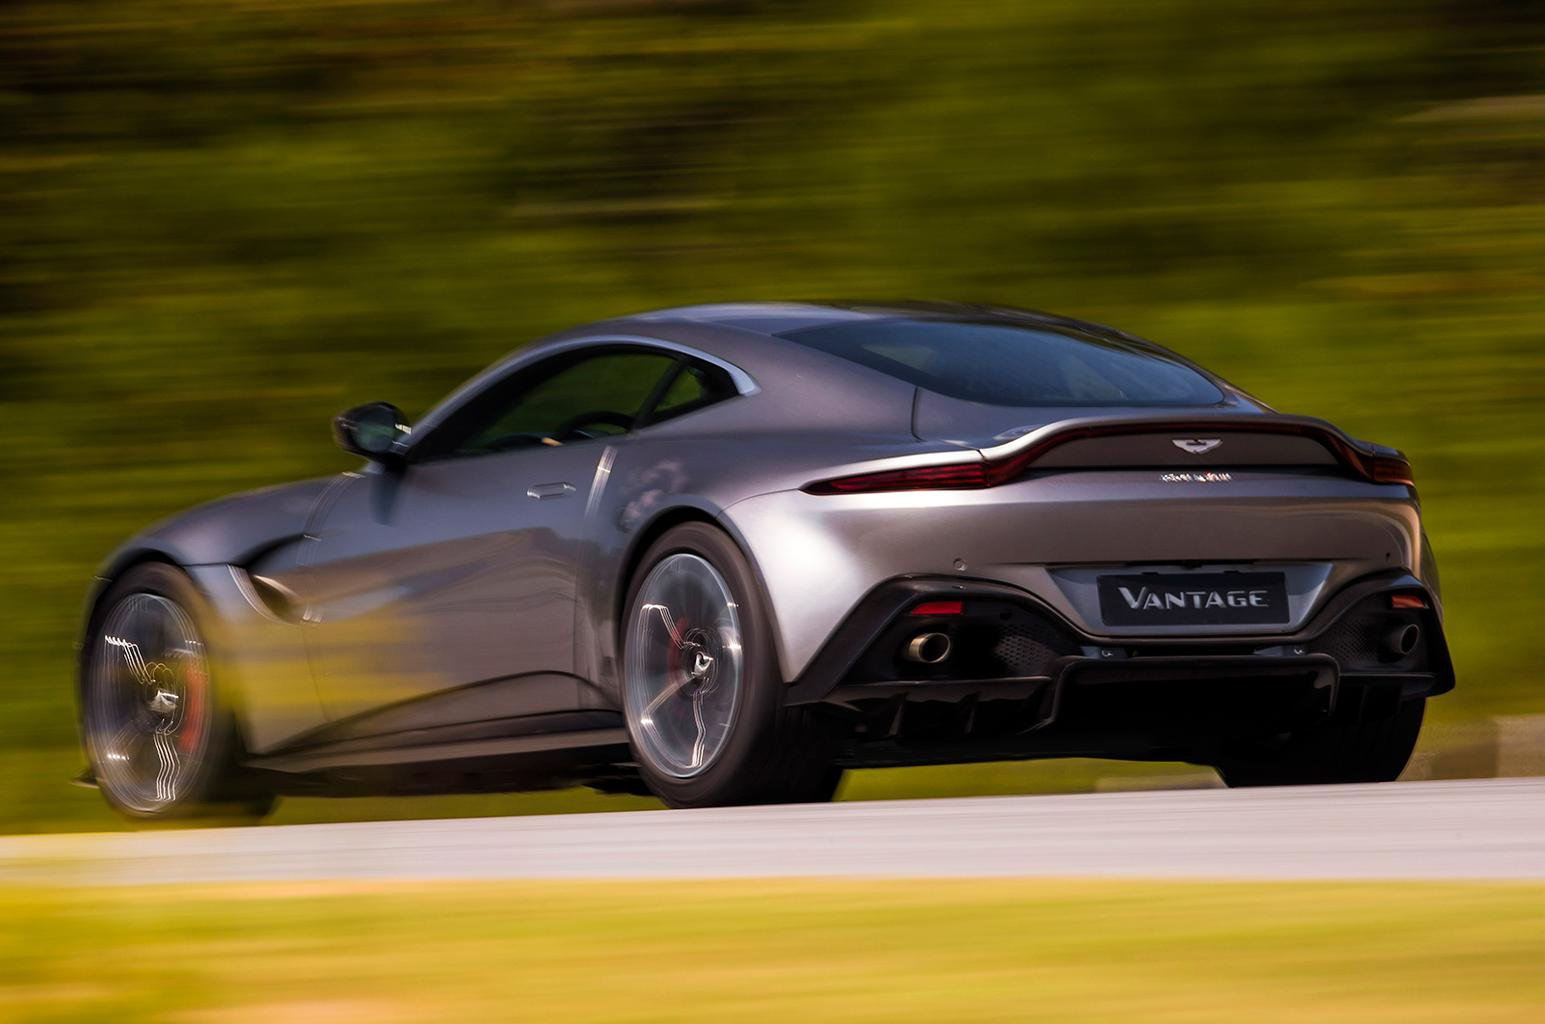 2018 Aston Martin Vantage revealed –price, specs and release date